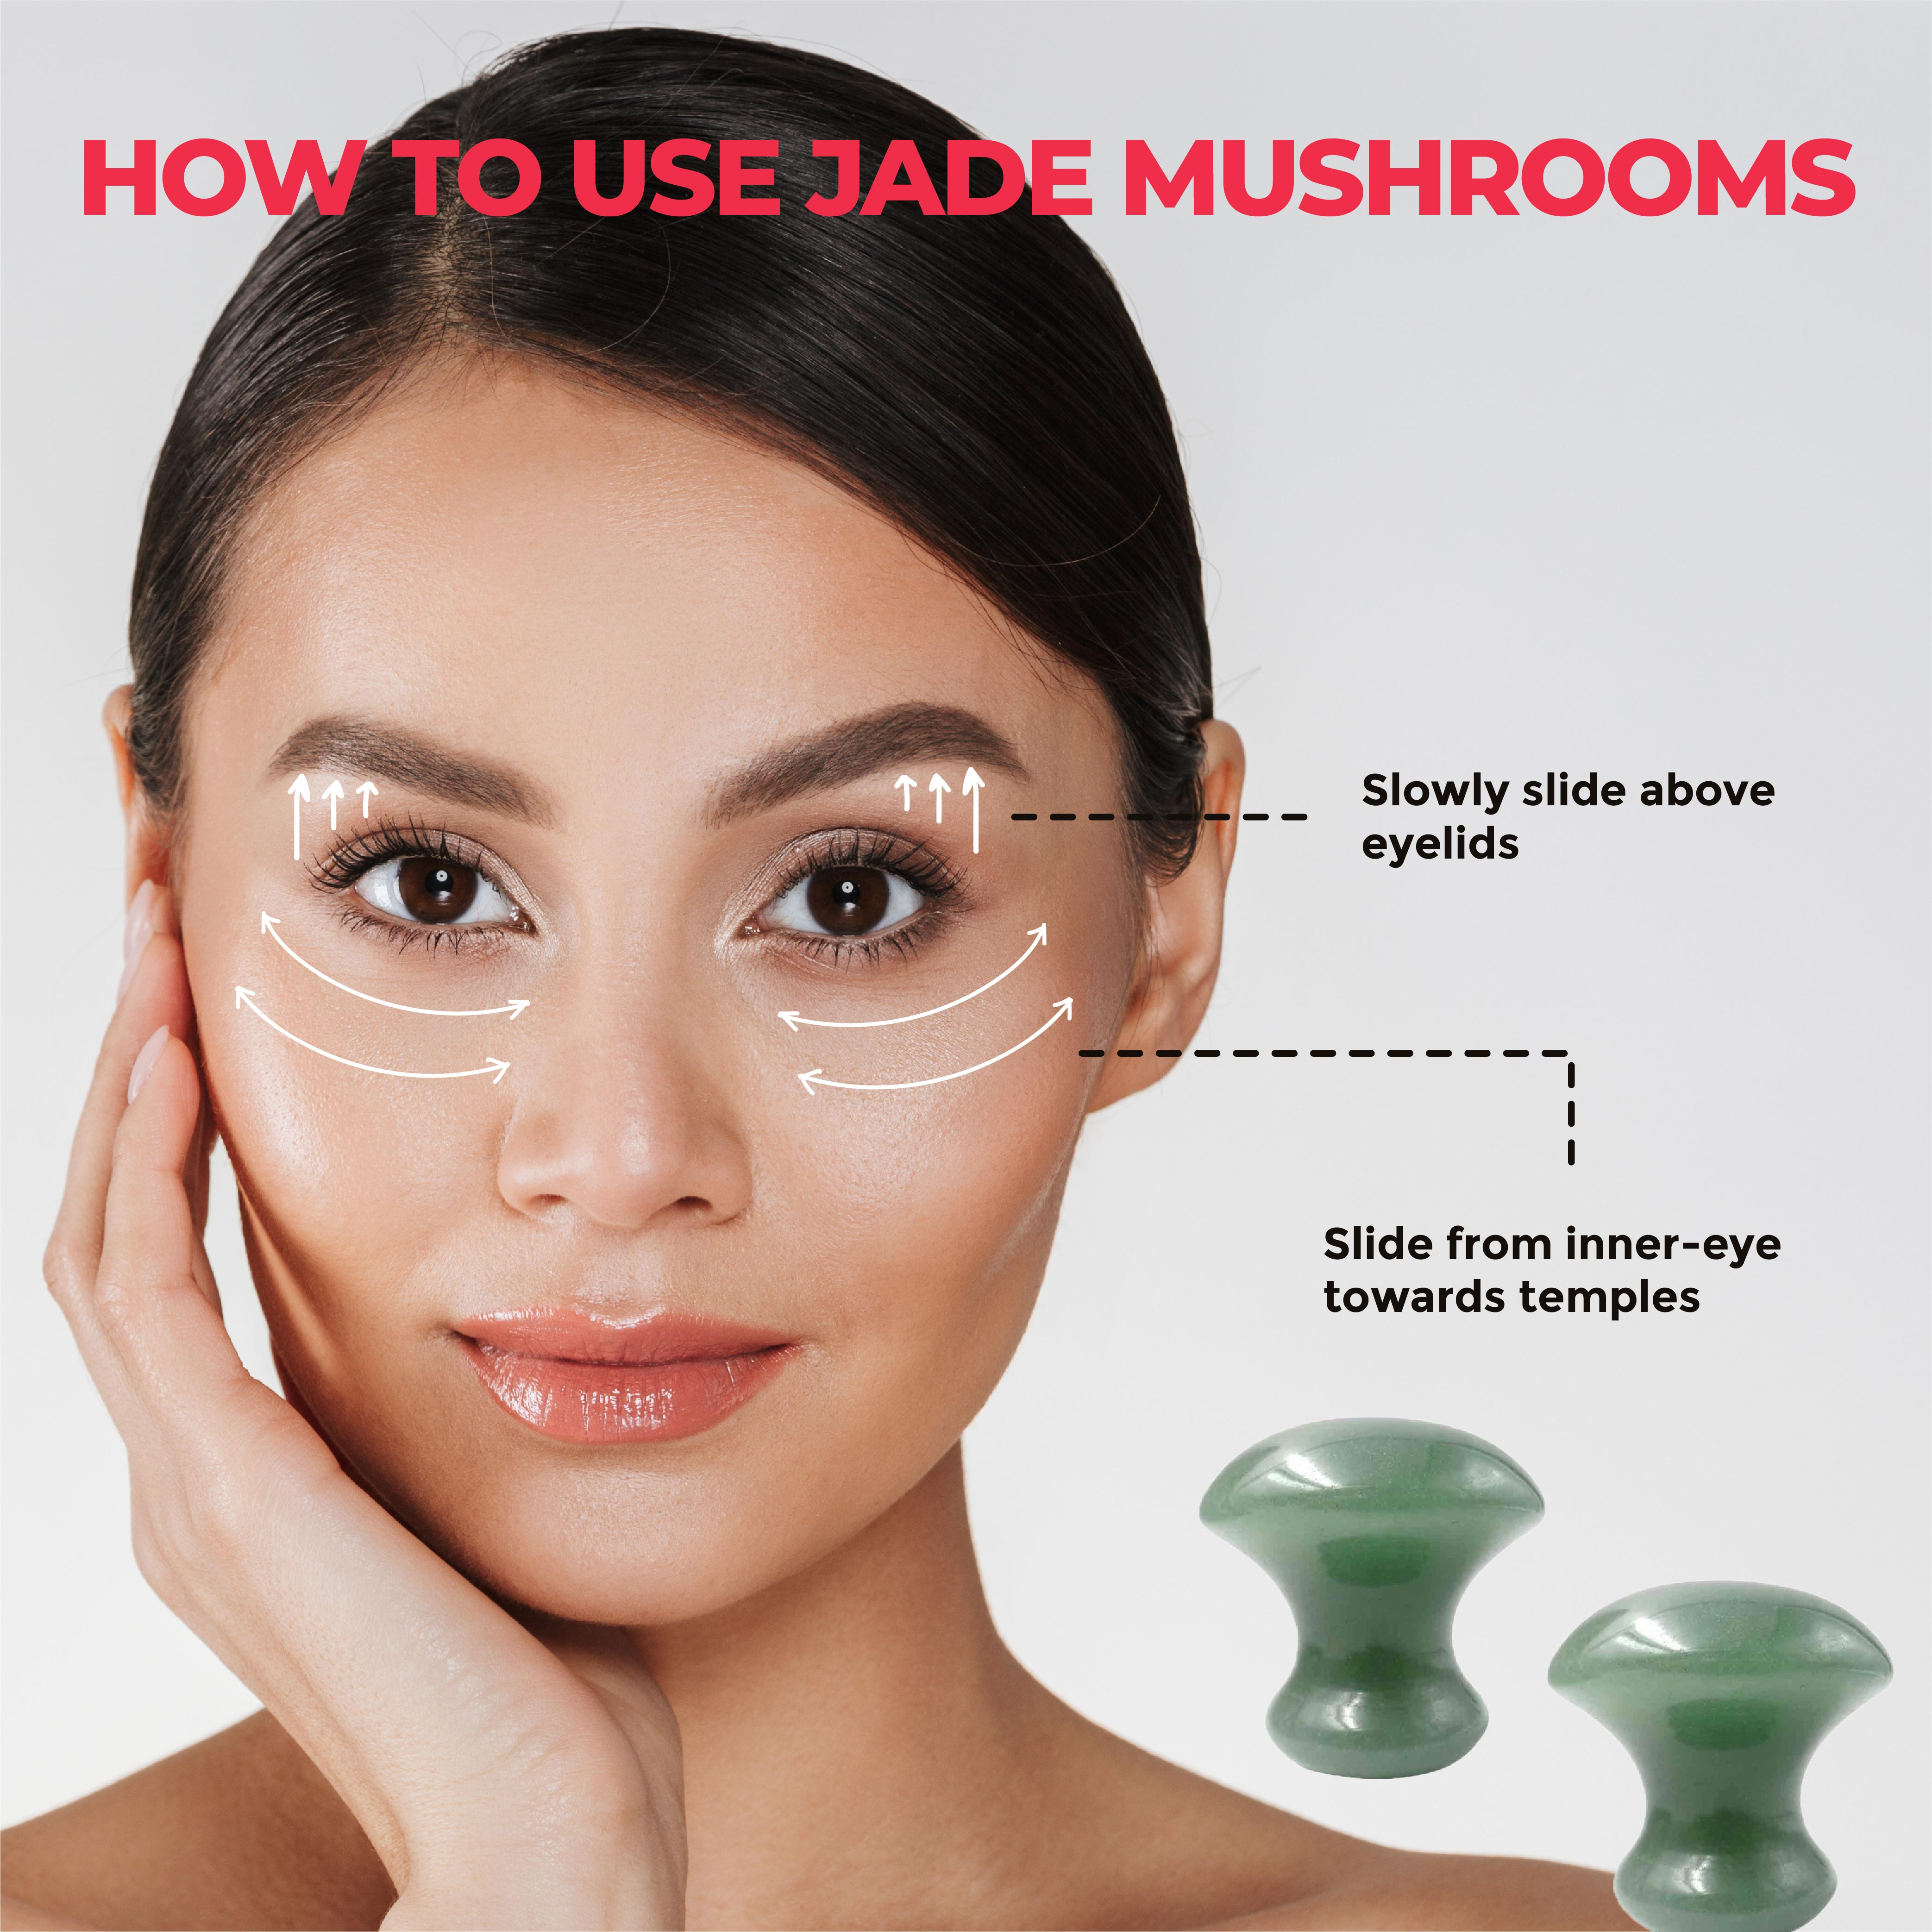 This is an image of how to use the House of Beauty Jade Mushrooms